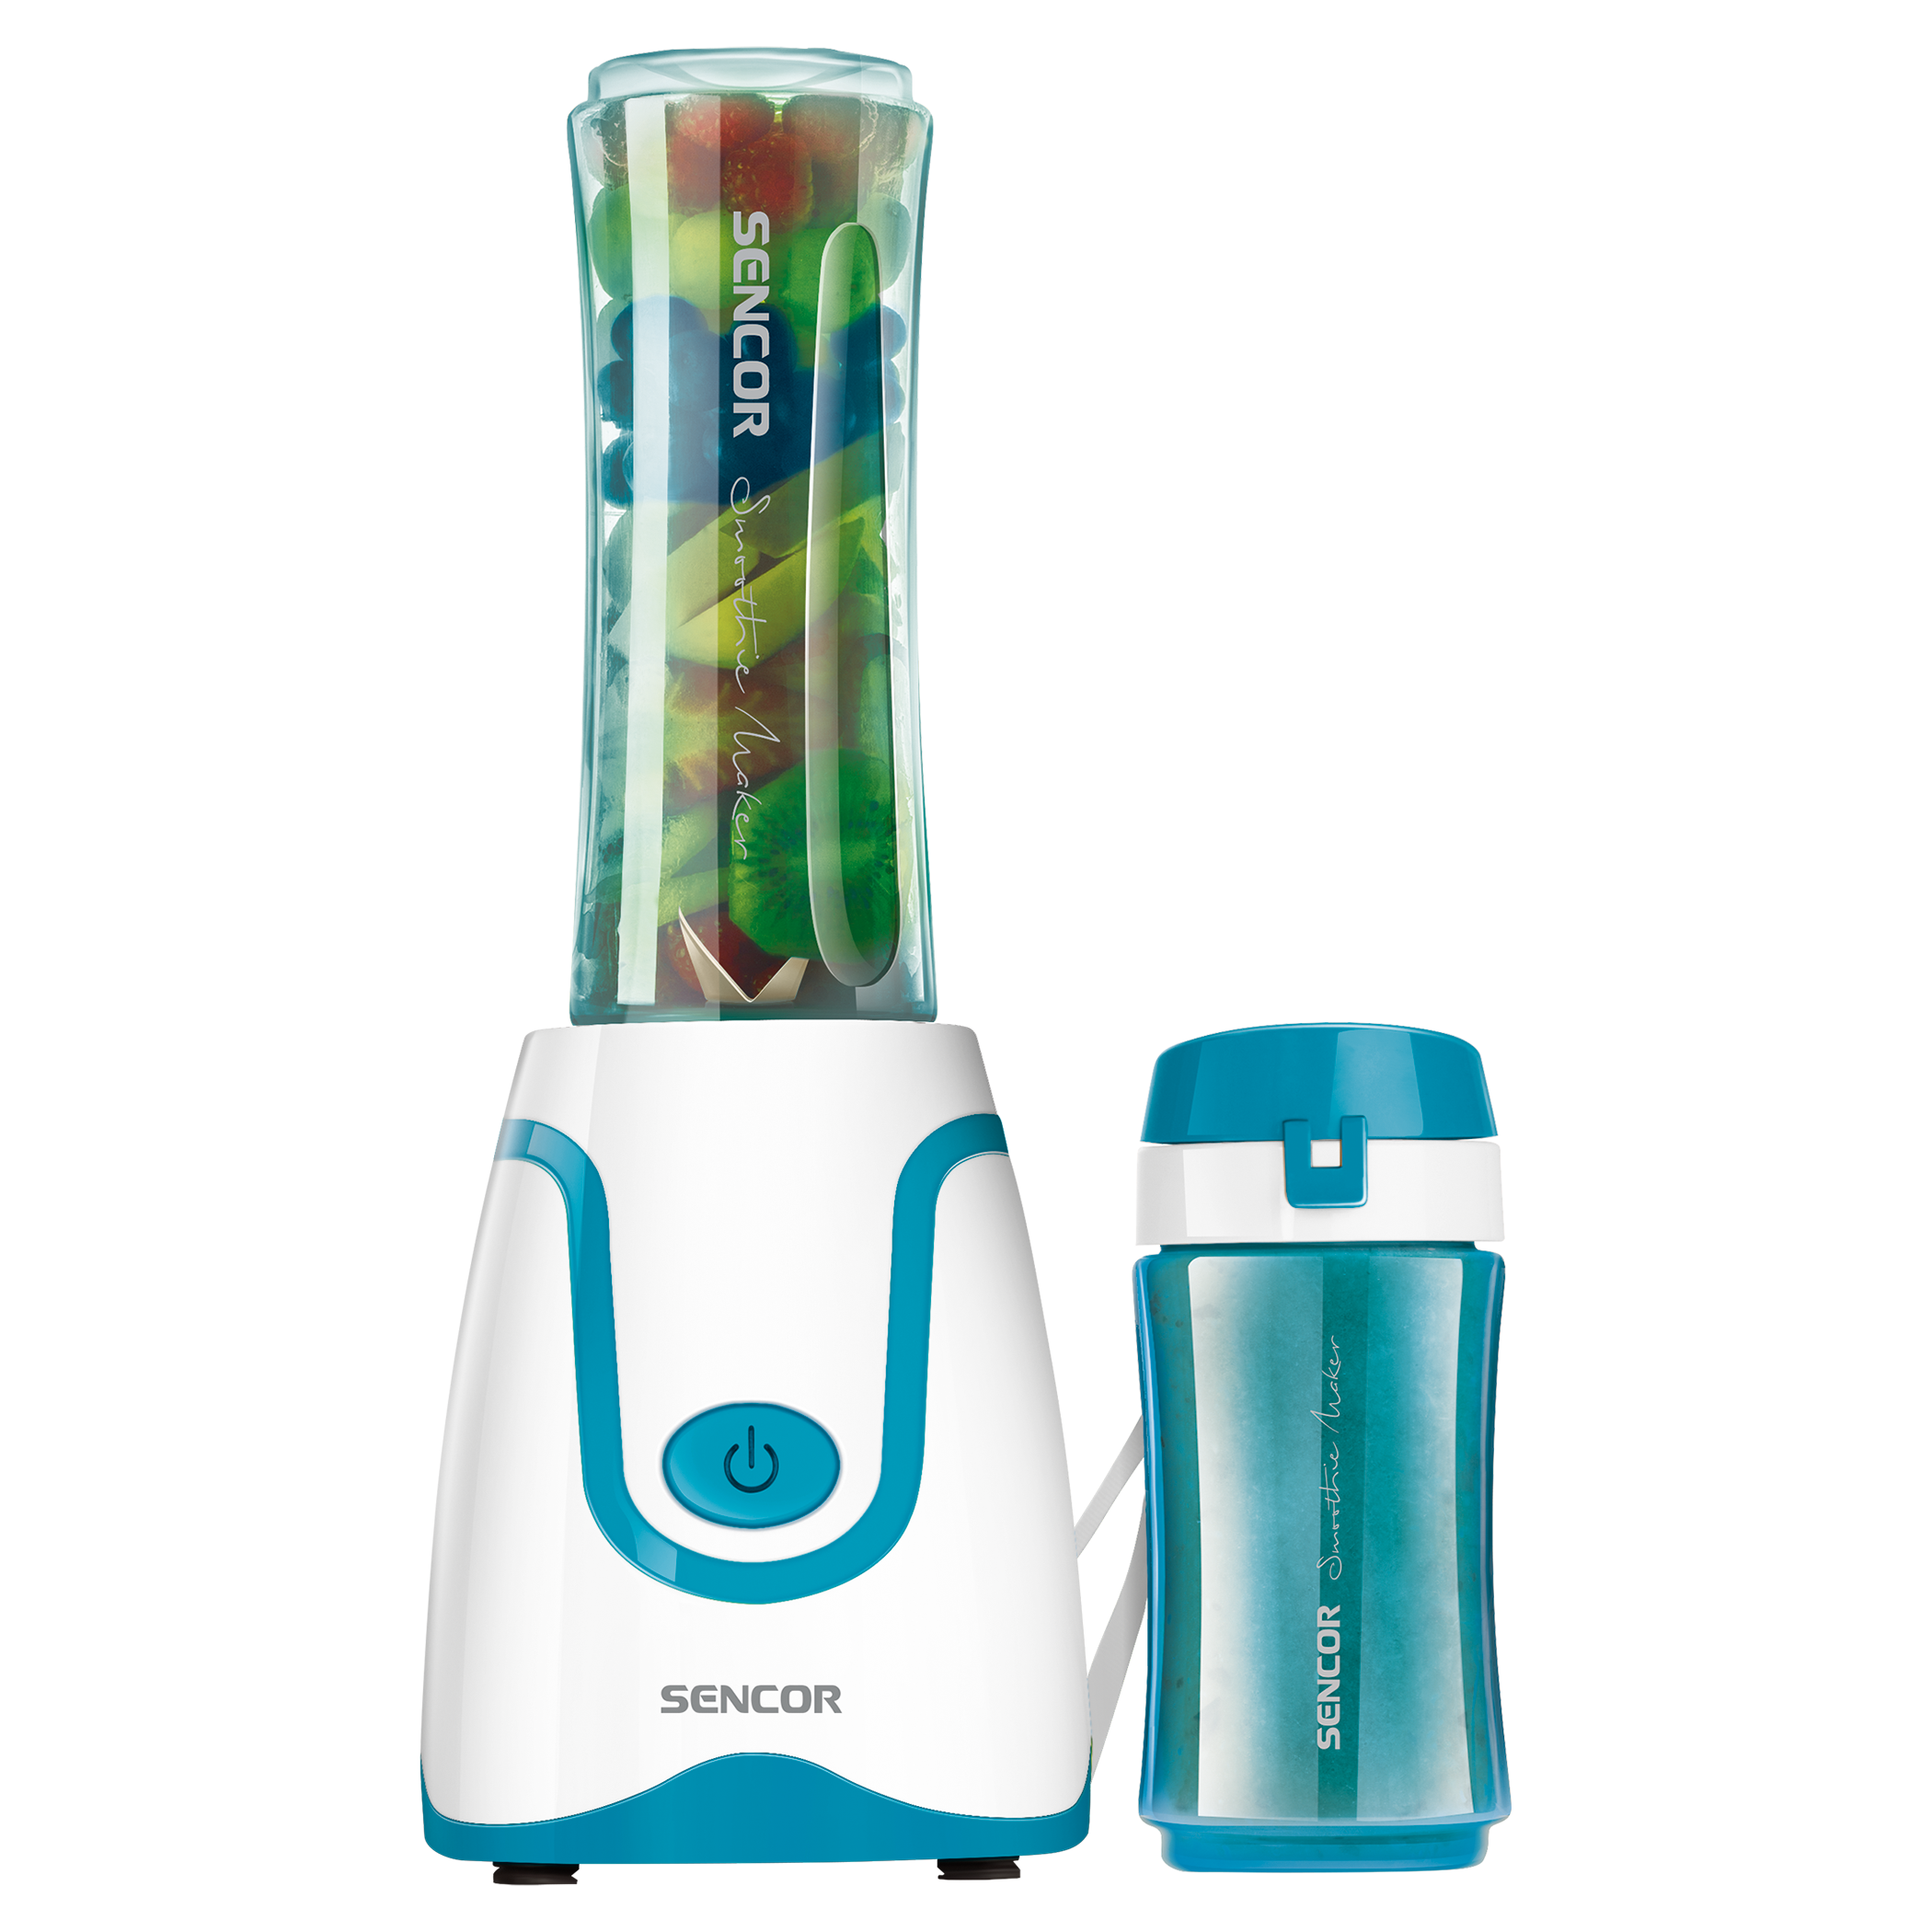 SBL 2207TQ Smoothie Maker